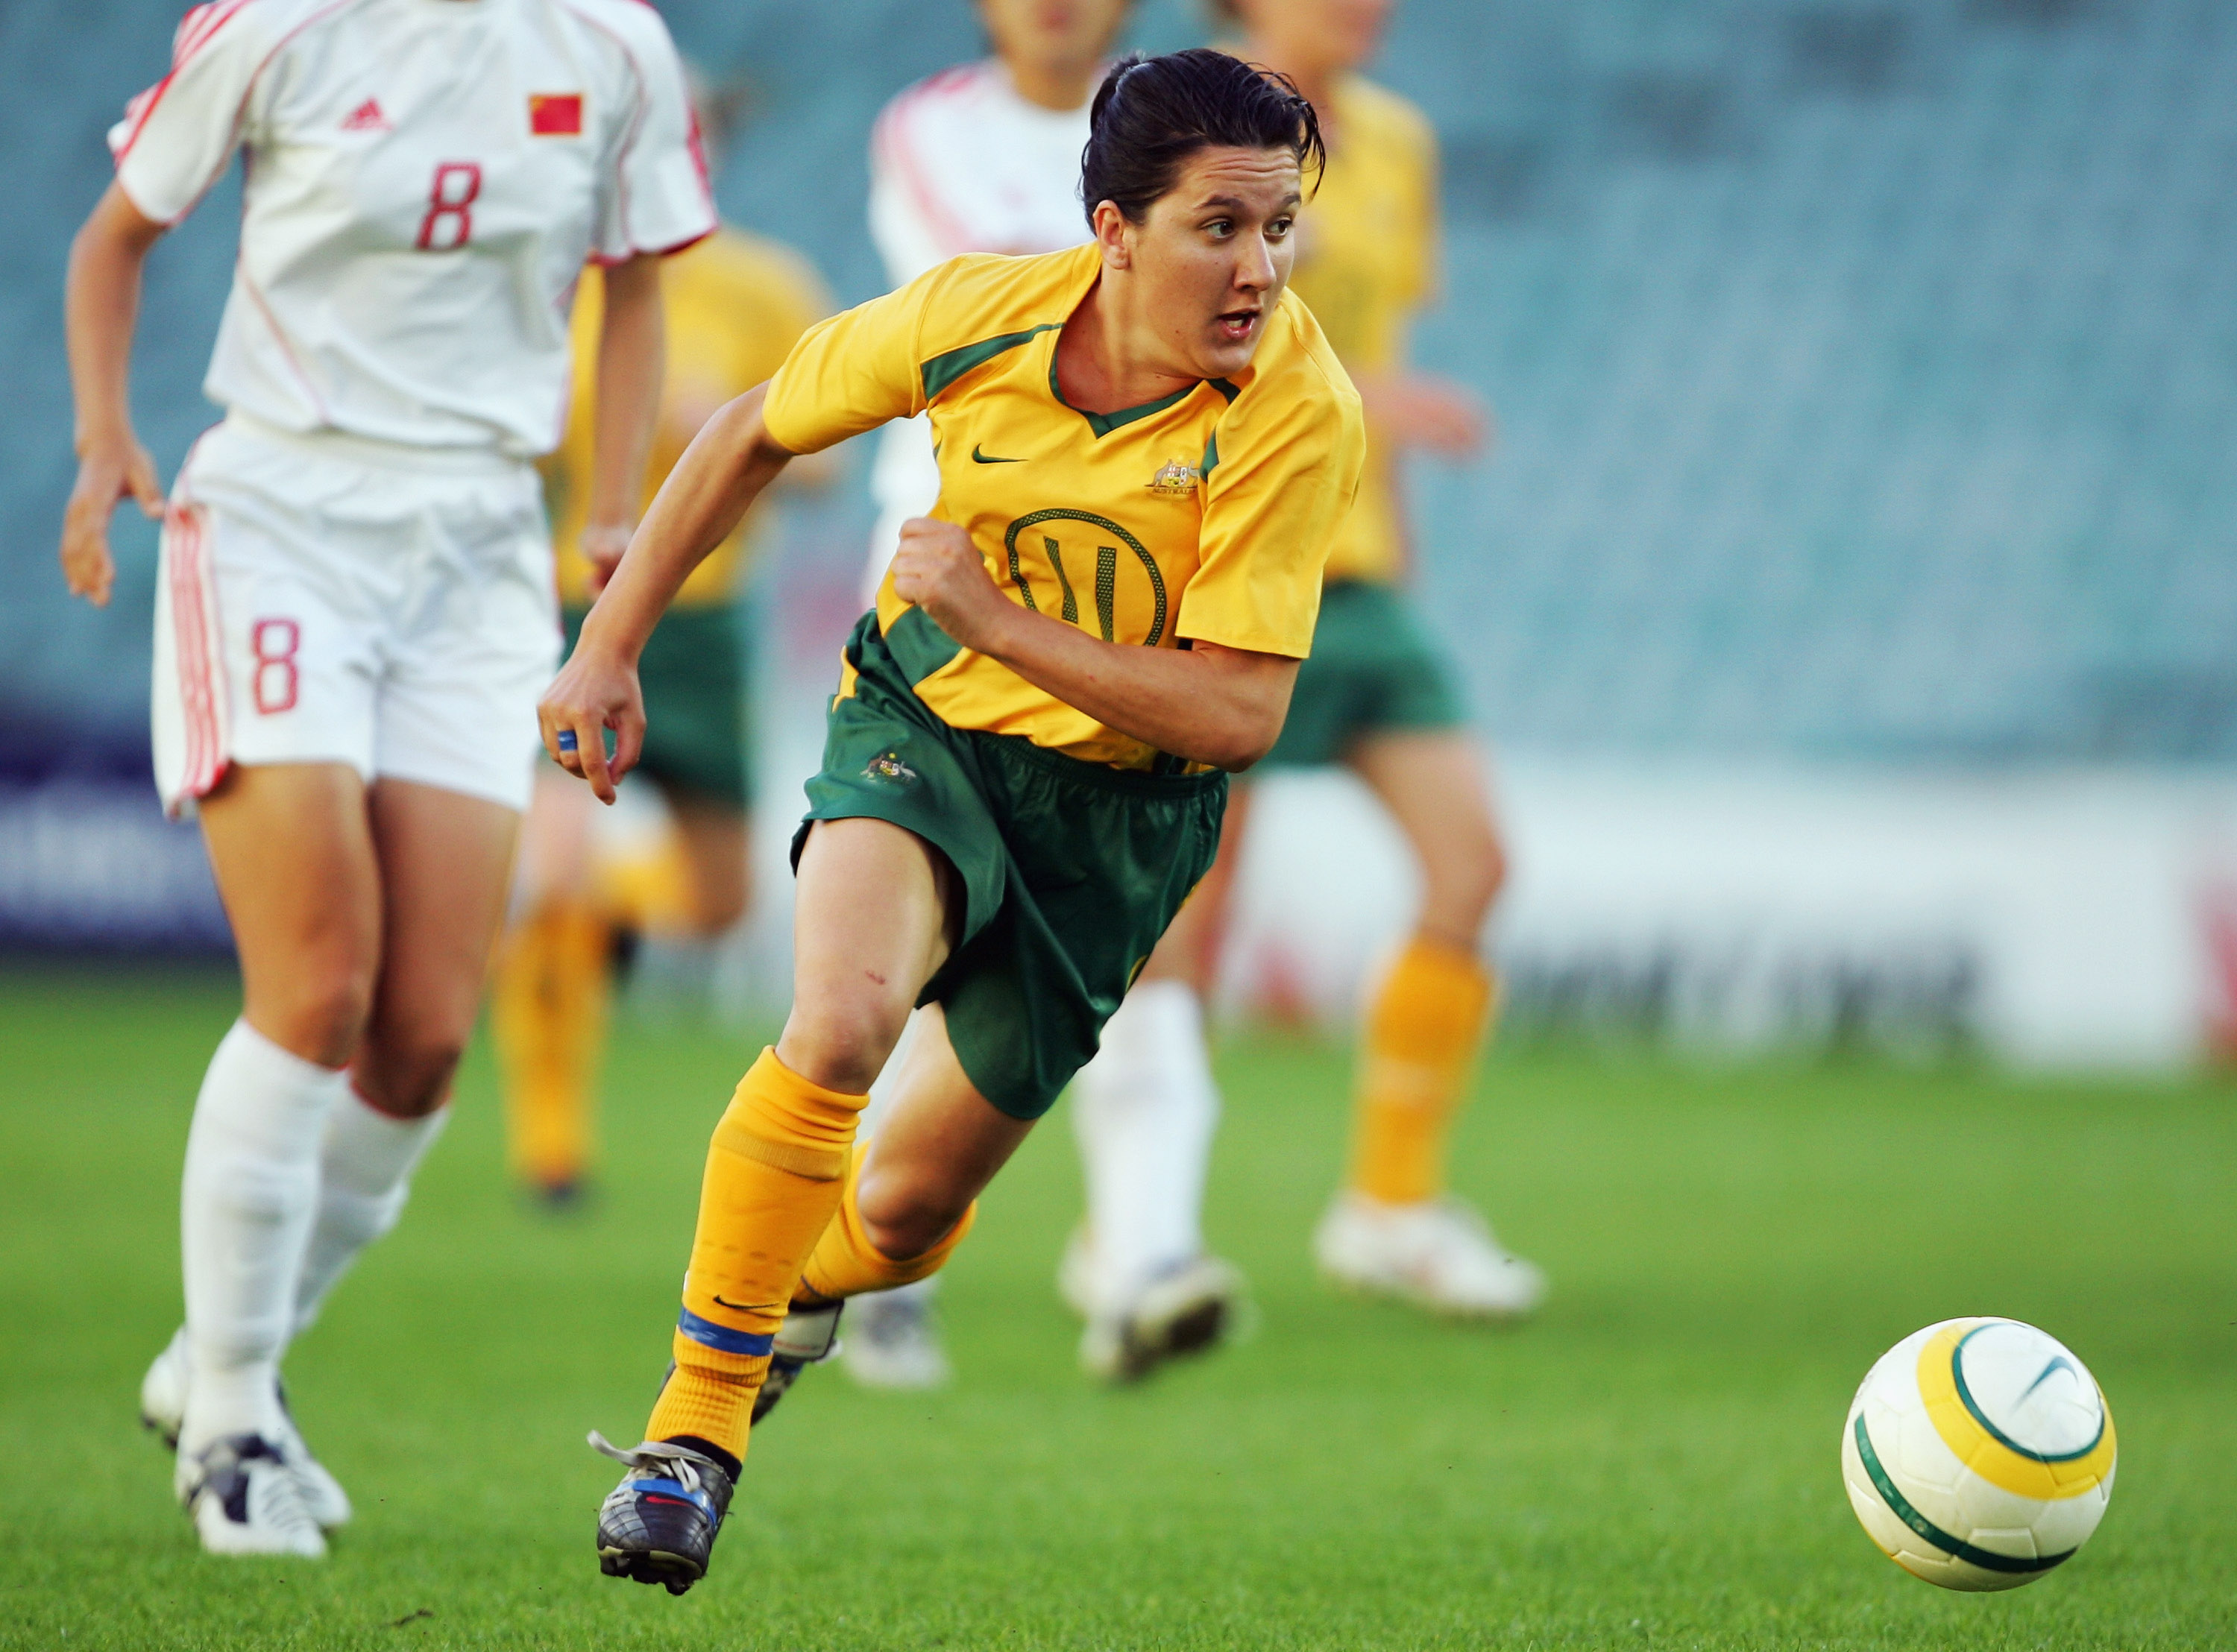 SYDNEY, AUSTRALIA - DECEMBER 03:   Lisa De Vanna  of Australia in action during the International Womens Football match between Australia and China at Aussie Stadium December 3, 2005 in Sydney, Australia. (Photo by Matt King/Getty Images)